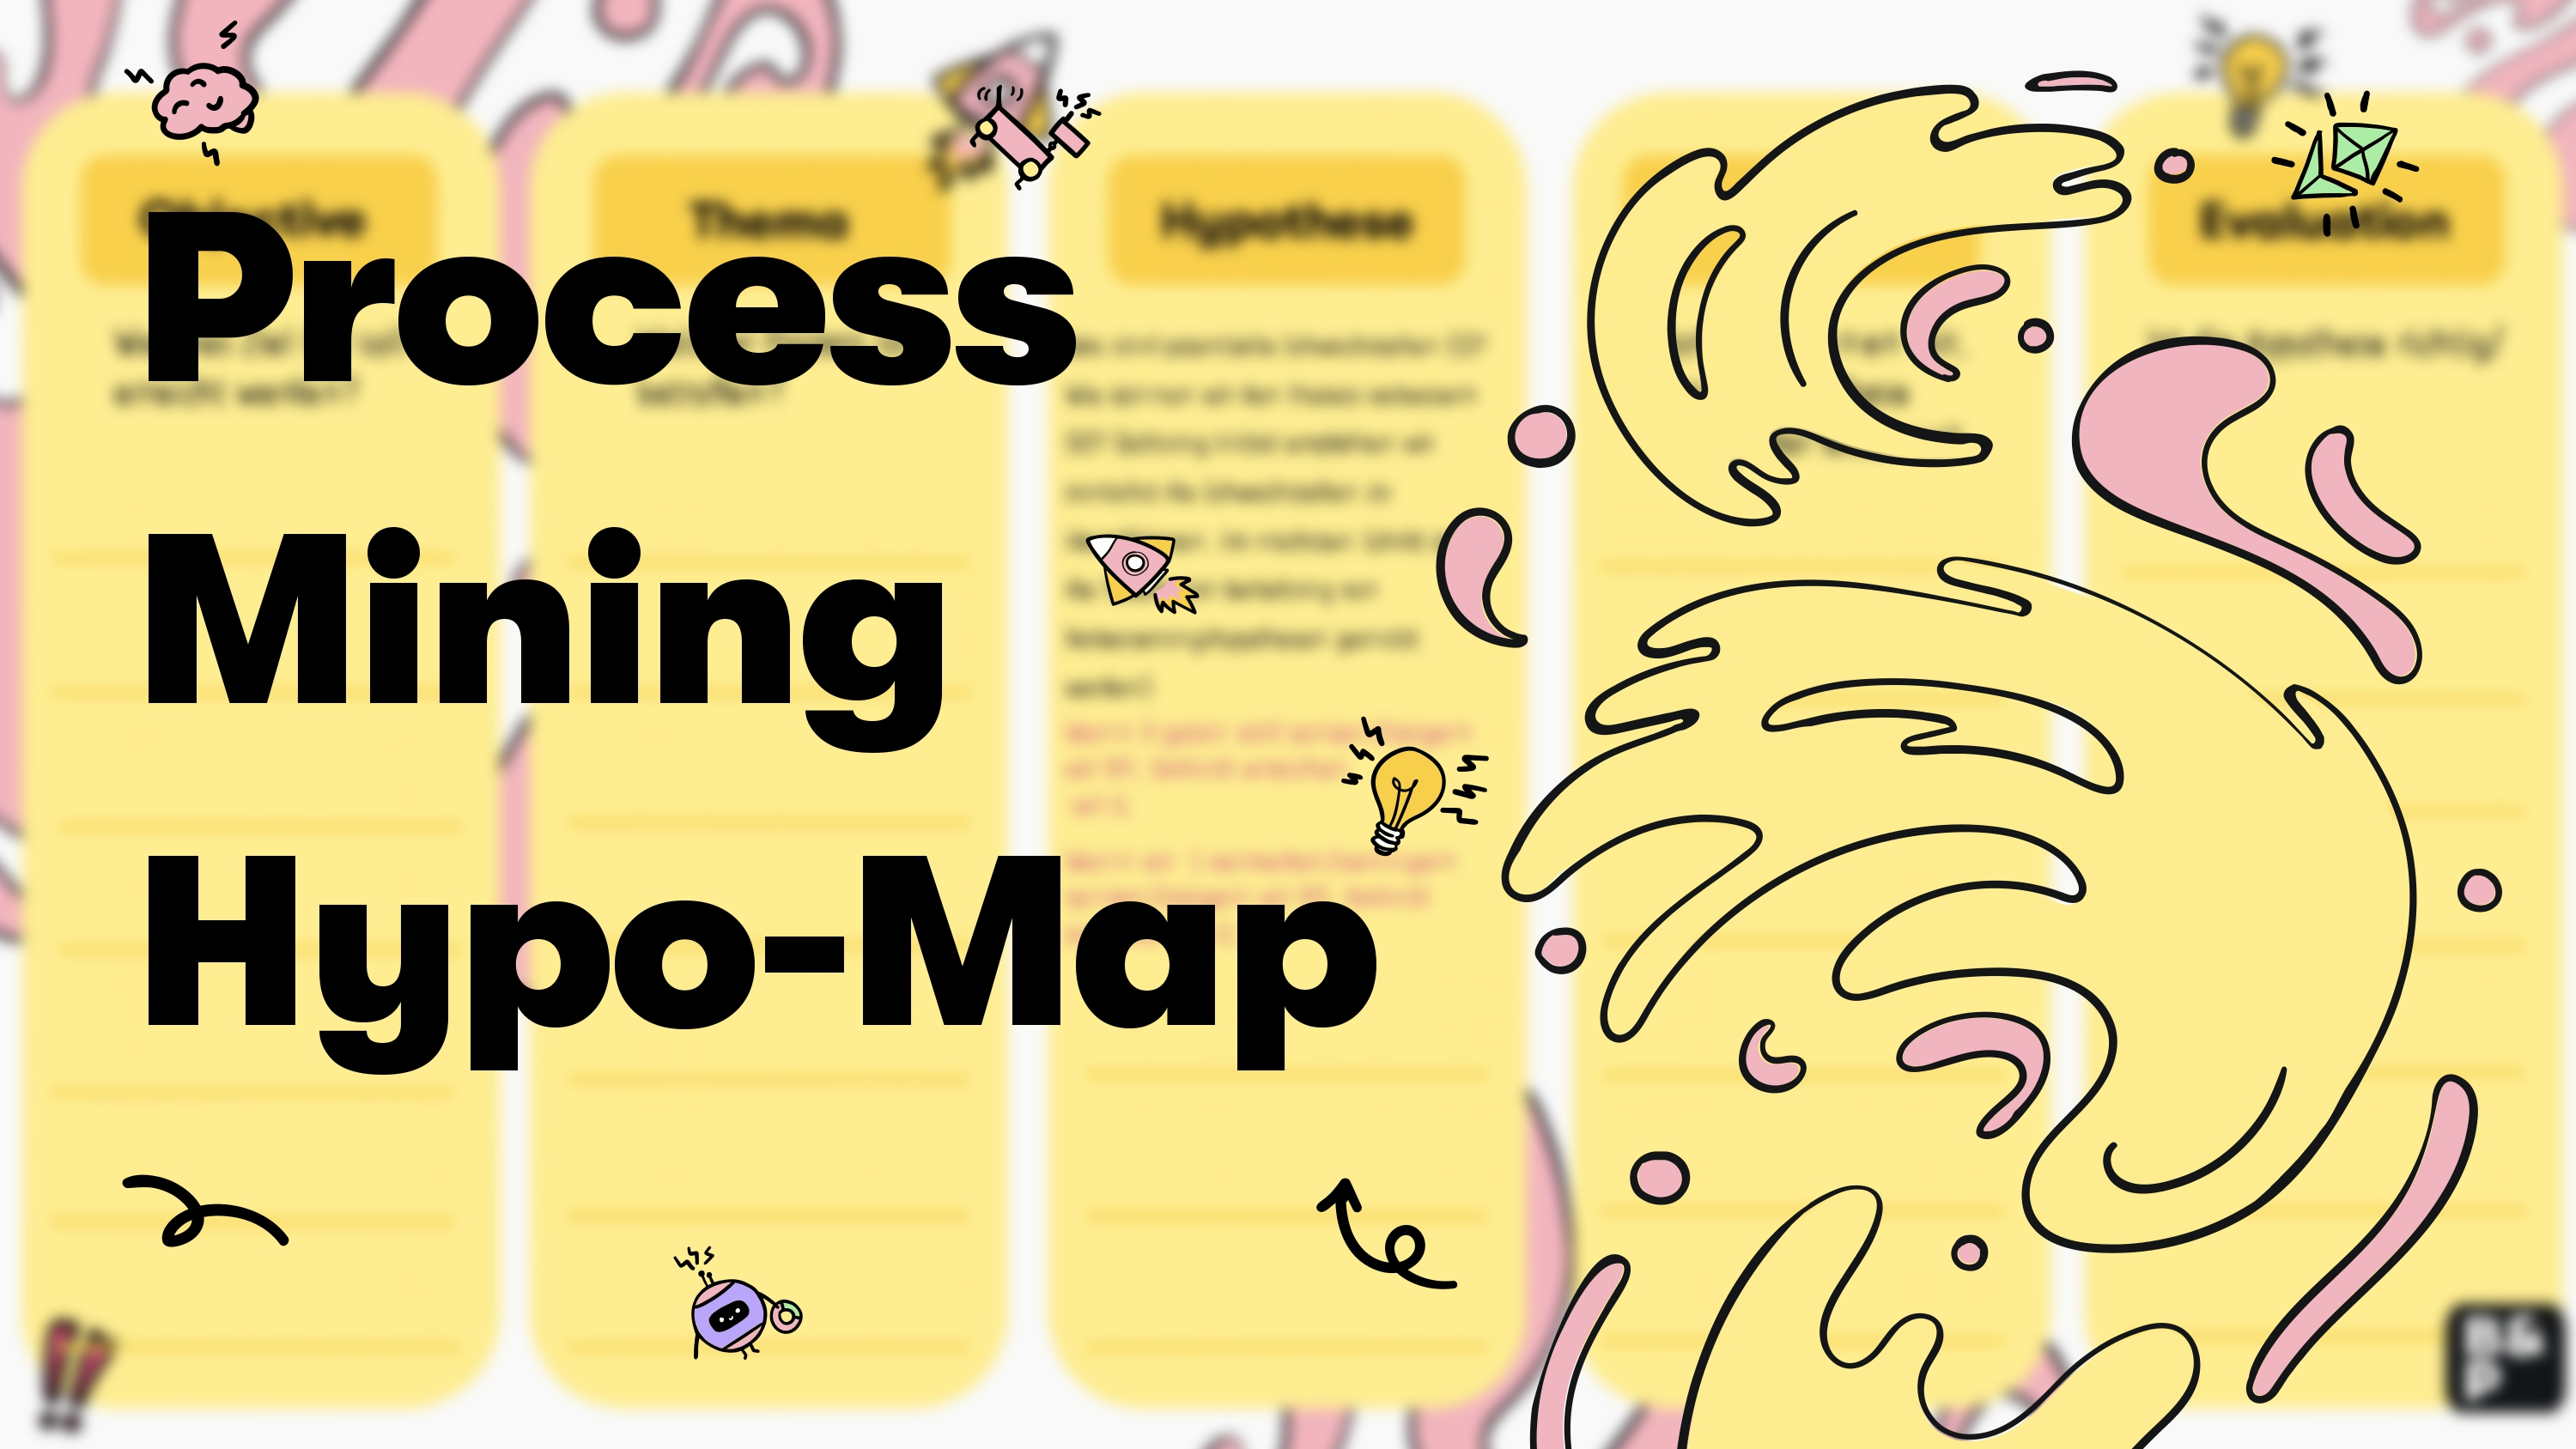 Process Mining Hyp-Map